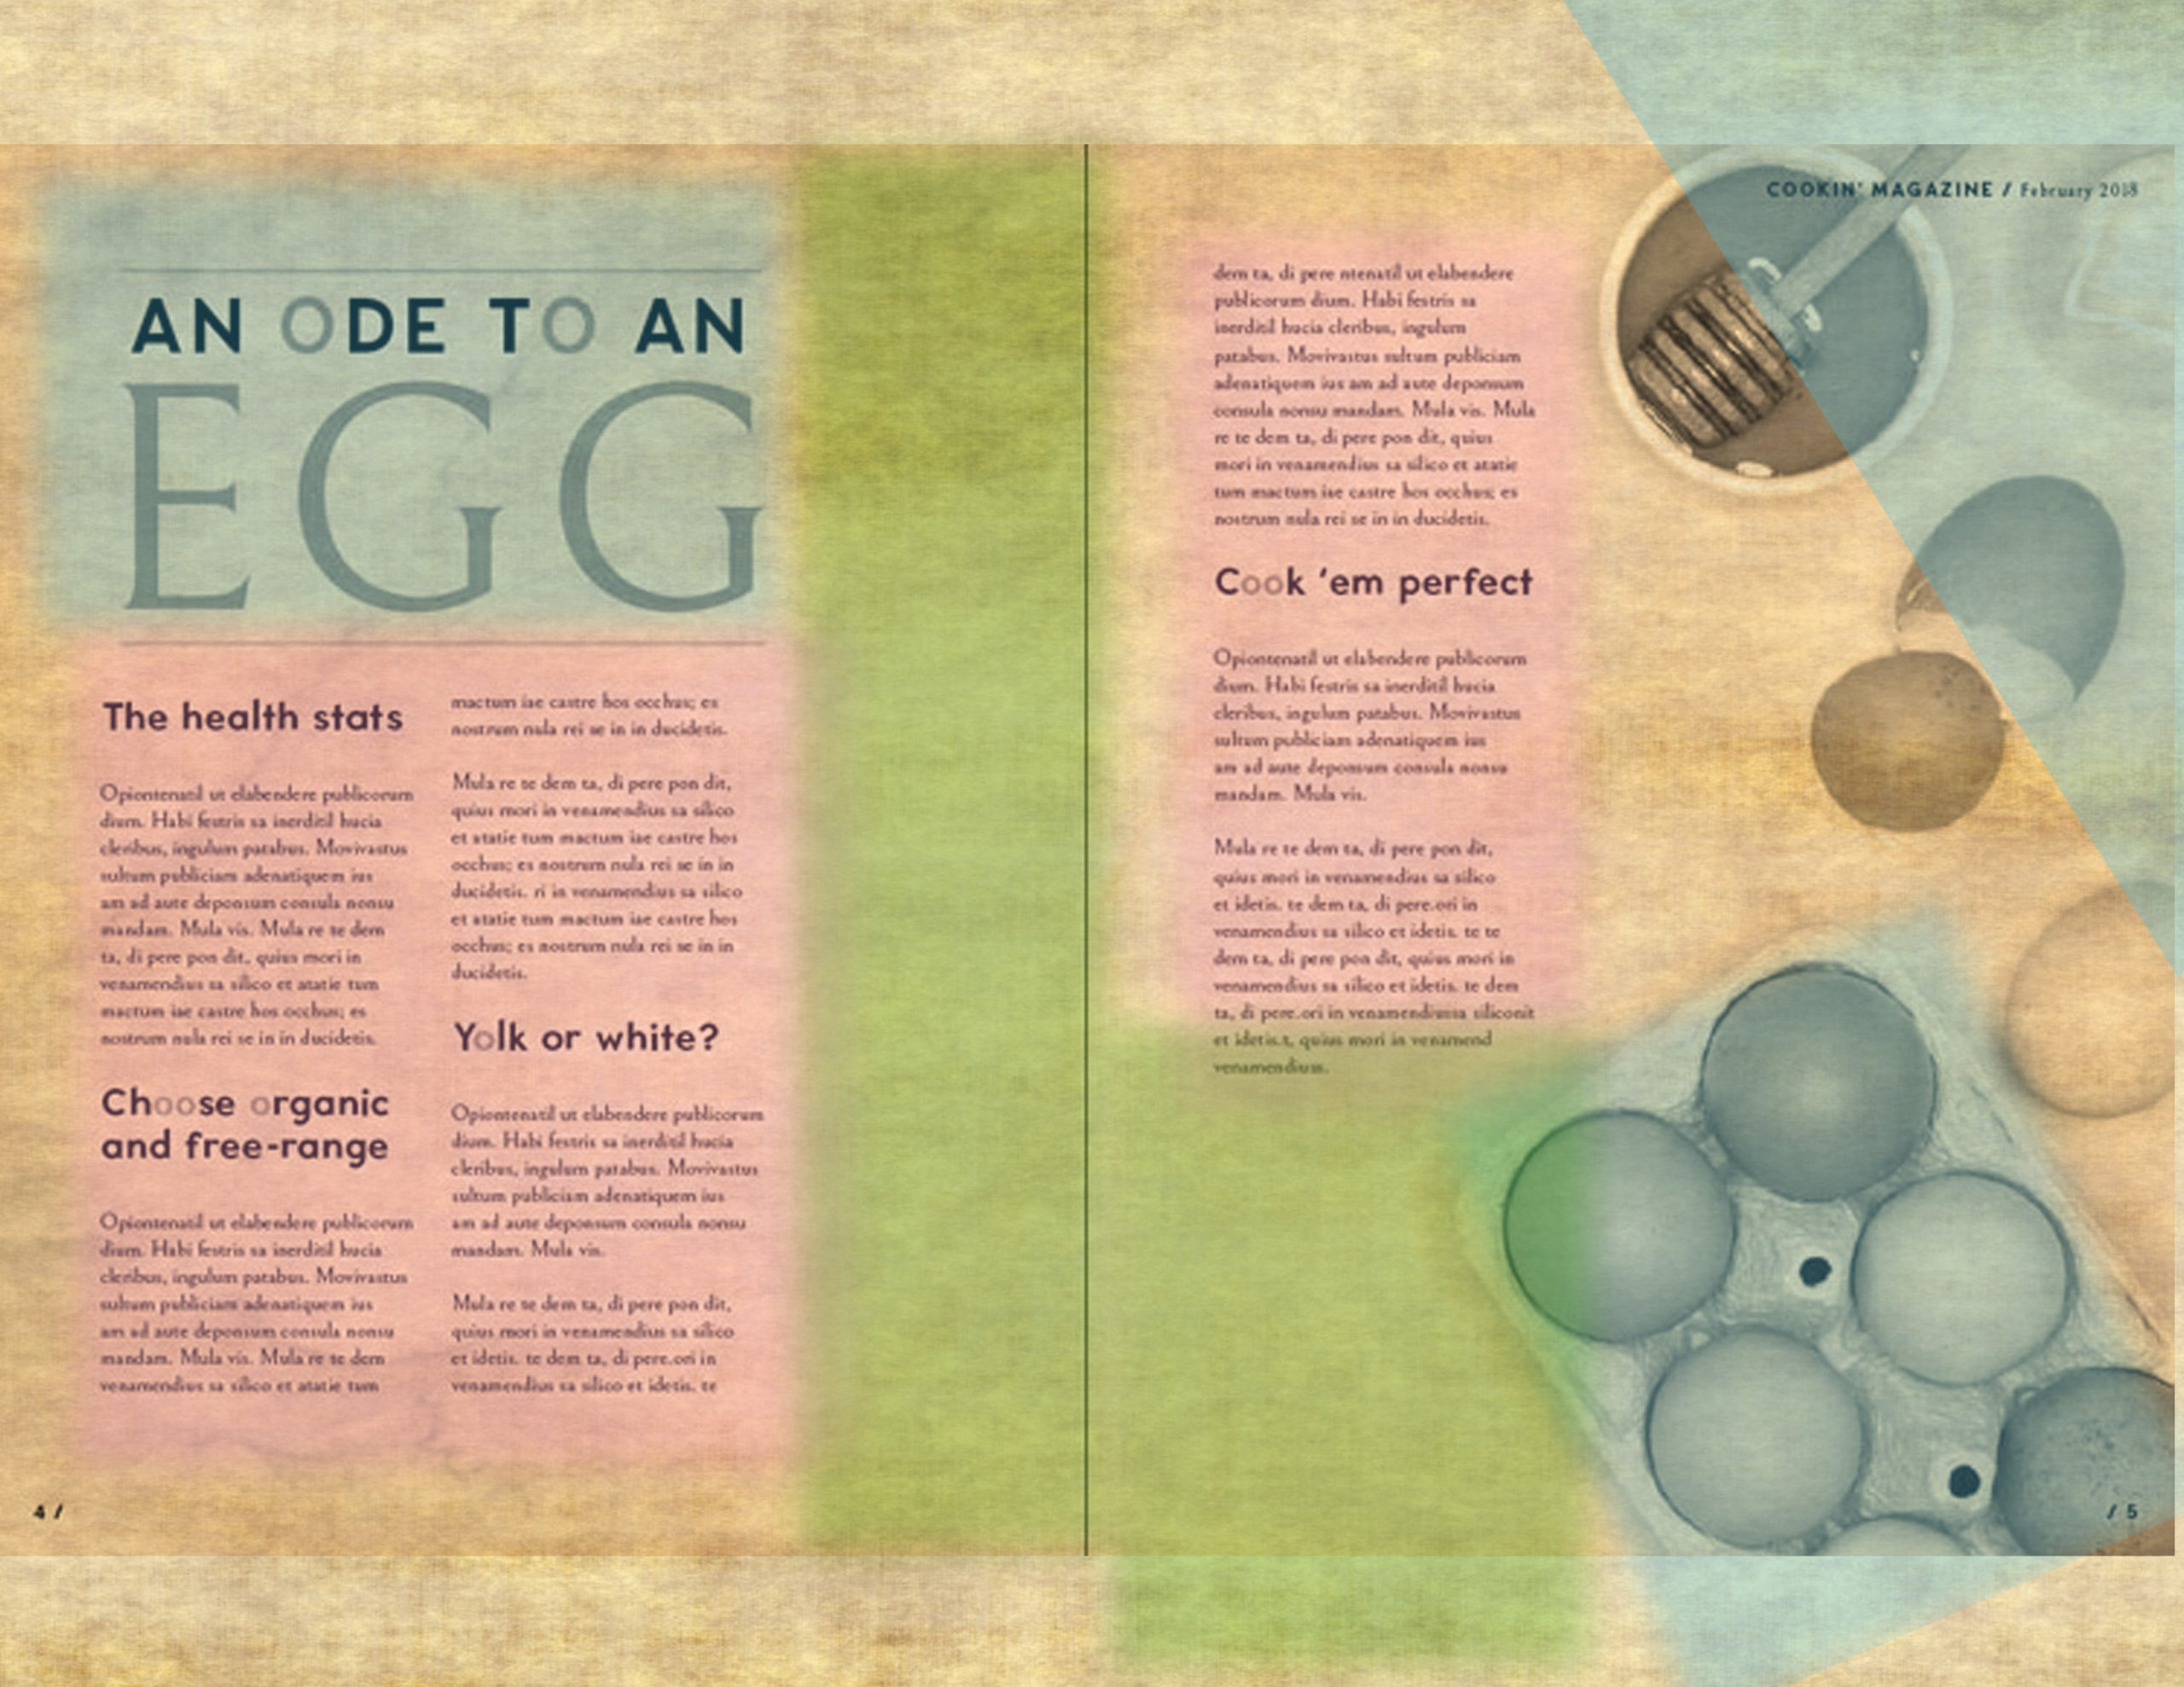 Journal Layout Inspiration: Using Magazine Spreads